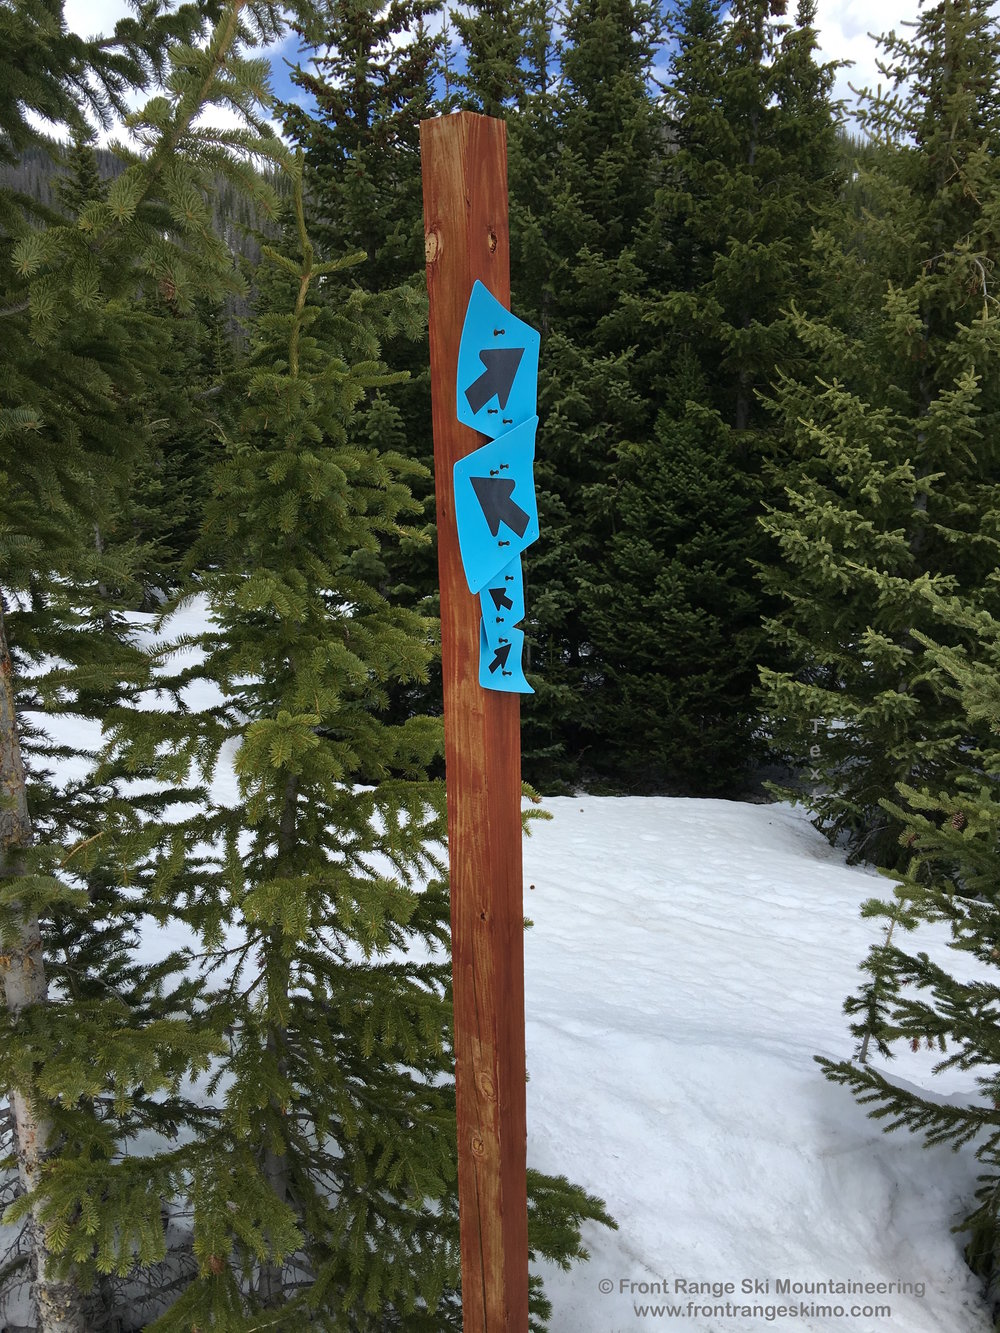 The trail marker at the junction for Clark Peak and Sawmill Peaks.